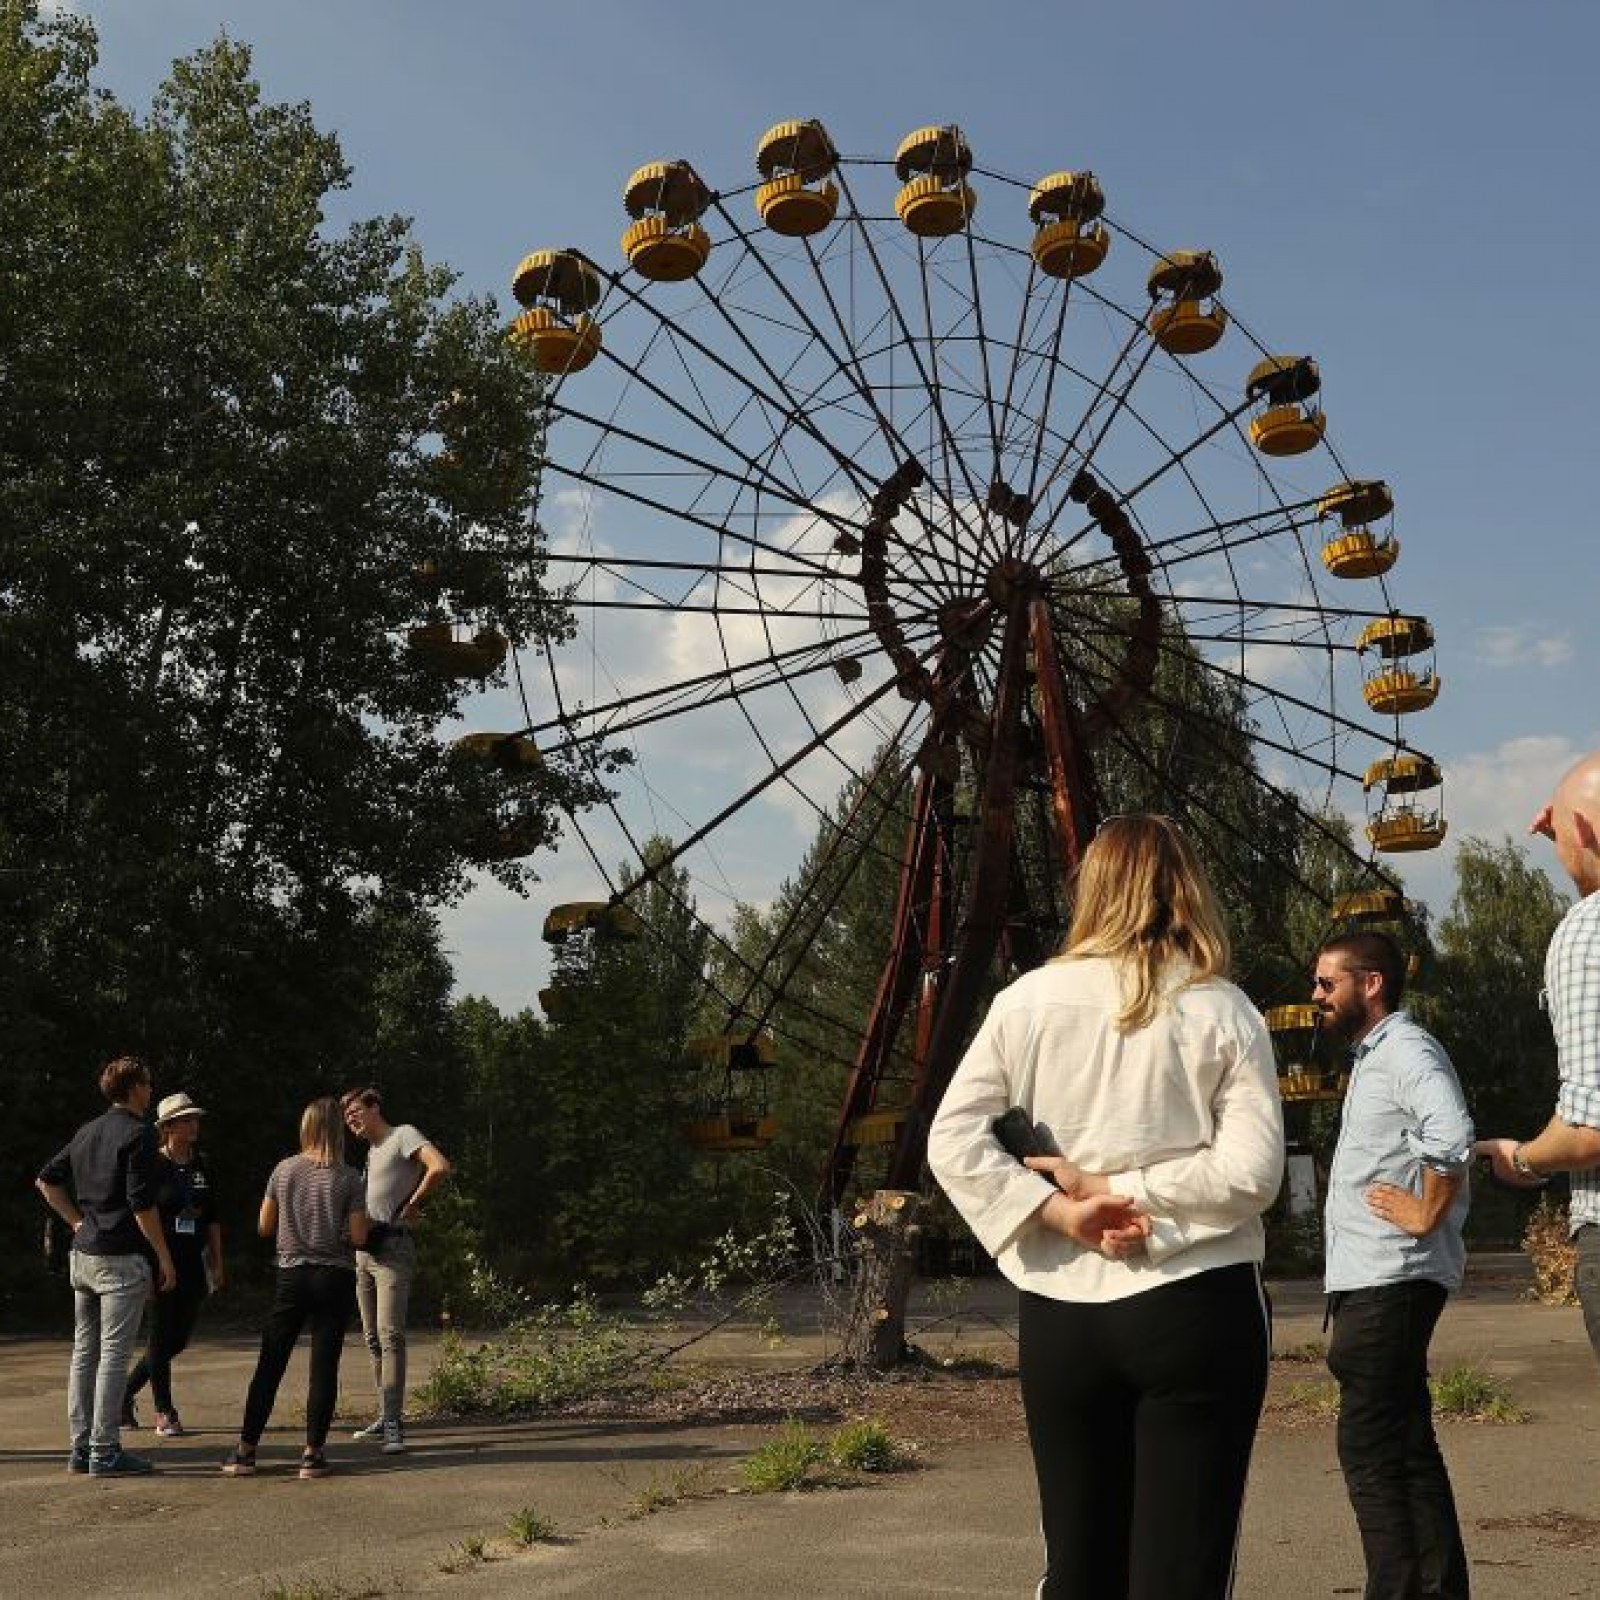 Chernobyl: From Nuclear Ghost Town to Tourist Attraction